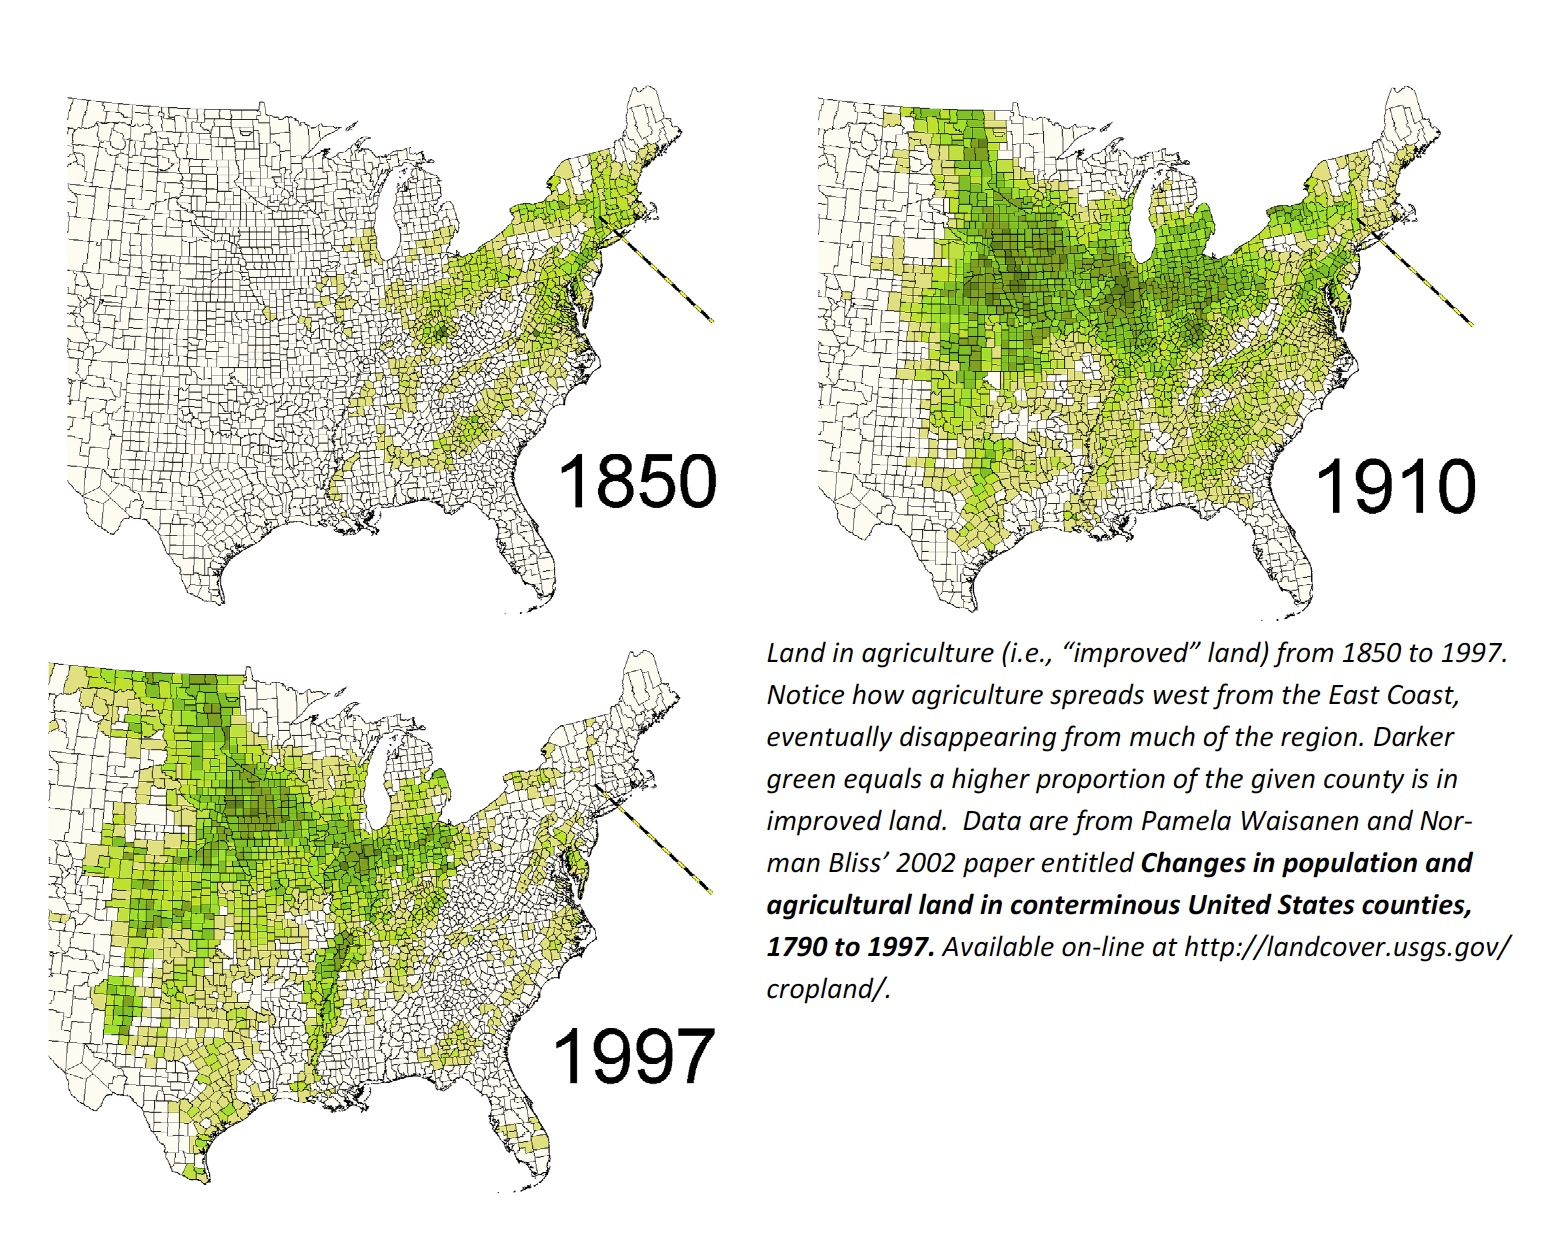 land in agriculture in eastern us 1850 1910 1997 map